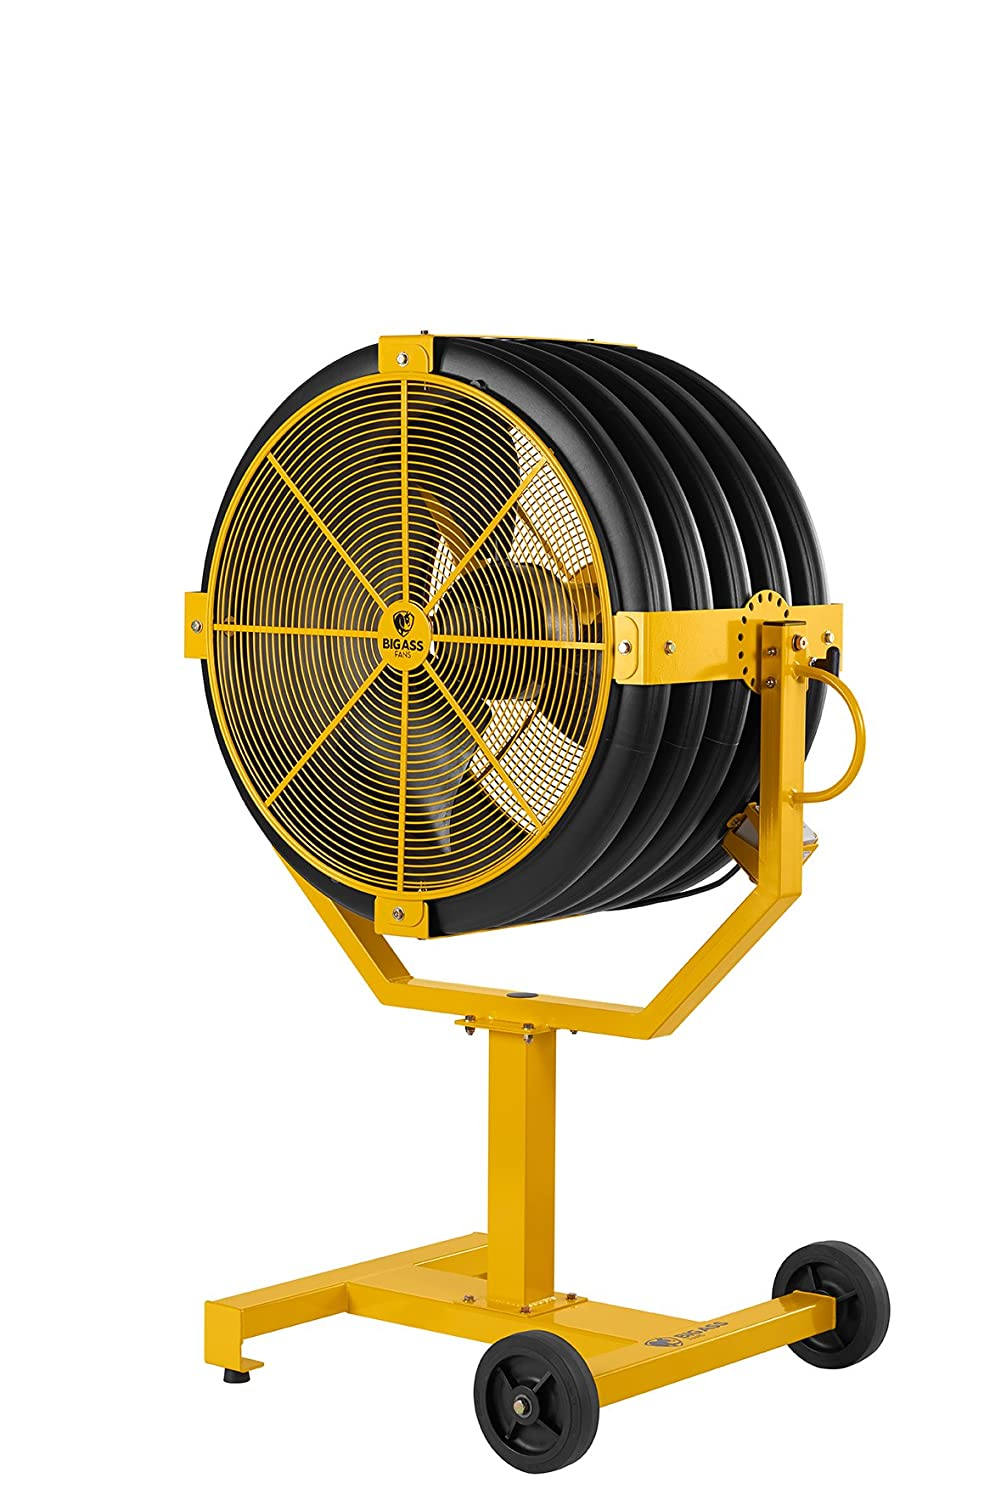 Big Ass Fans MP-YJ1-031018S34 Yellow Jacket Indoor/Outdoor Mobile ...